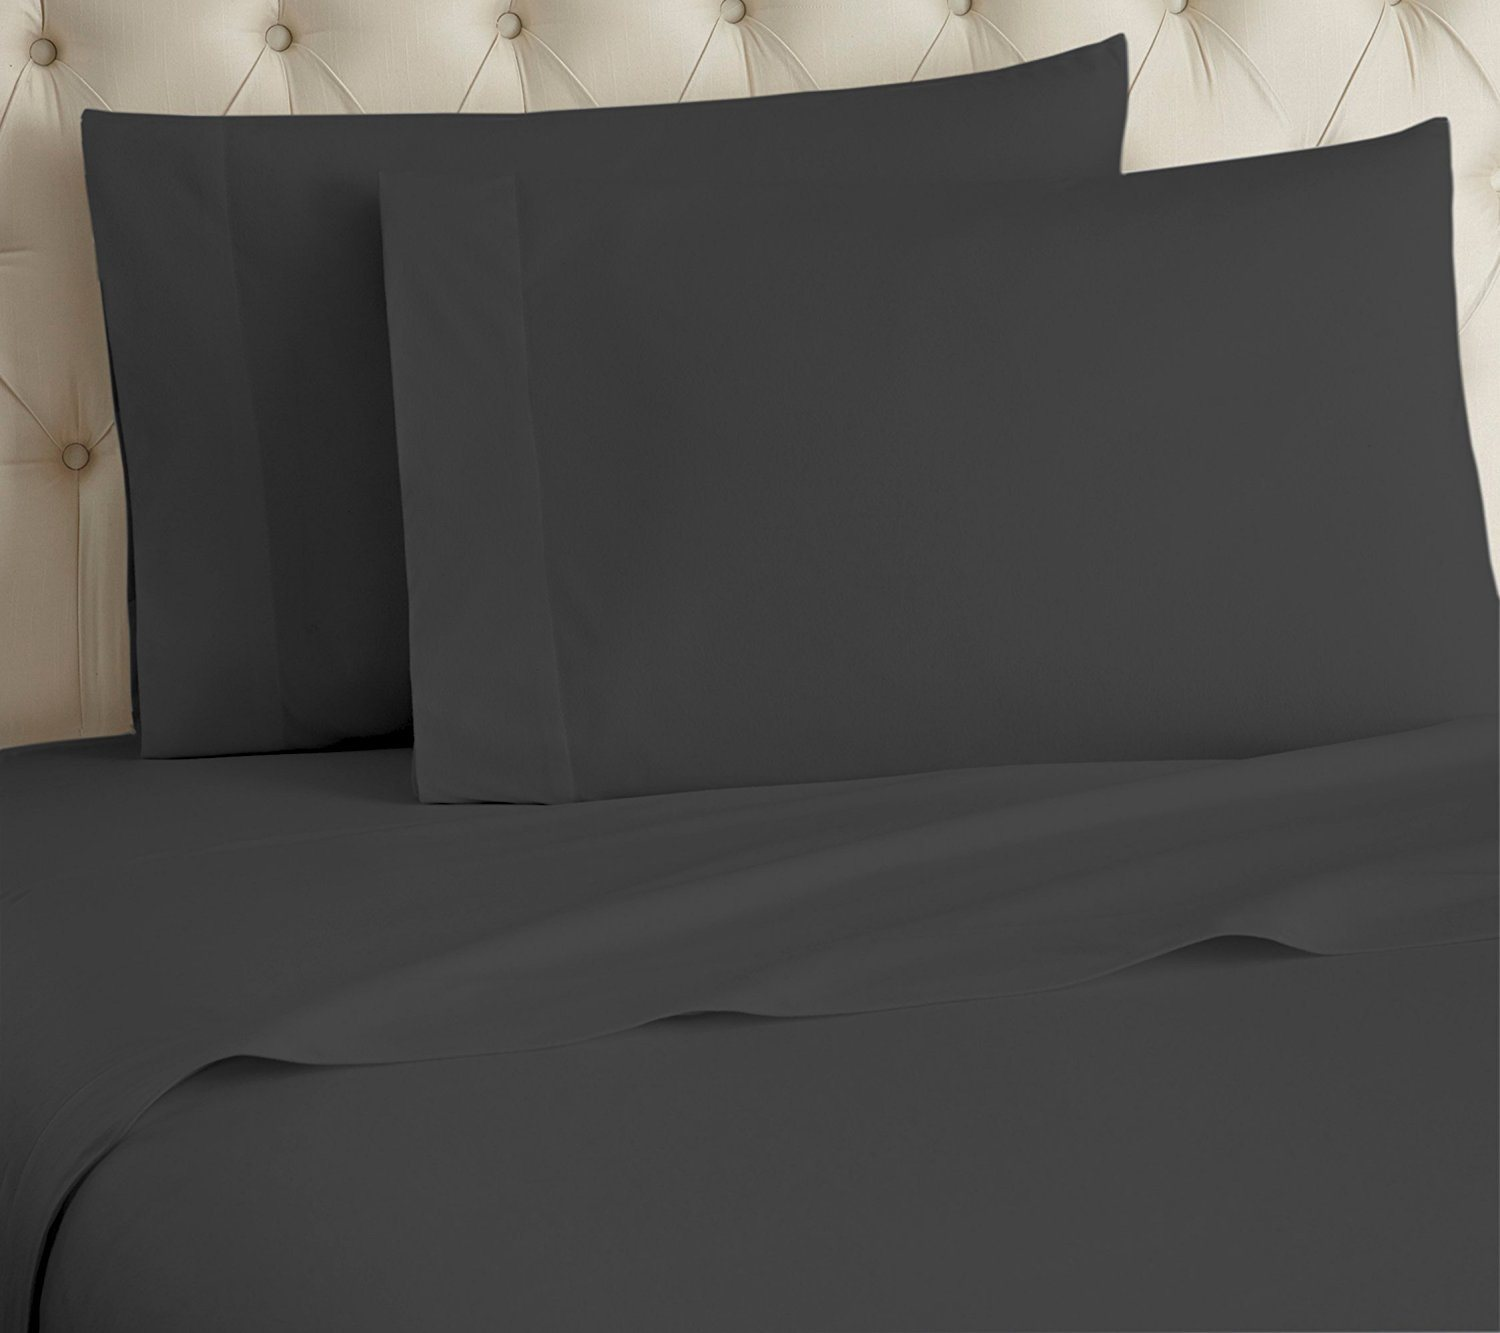 China 350tc 100 Cotton Sheet Set Soft Sa Weave Queen Sheets Deep Pockets Hotel Collection Luxury Bedding Super